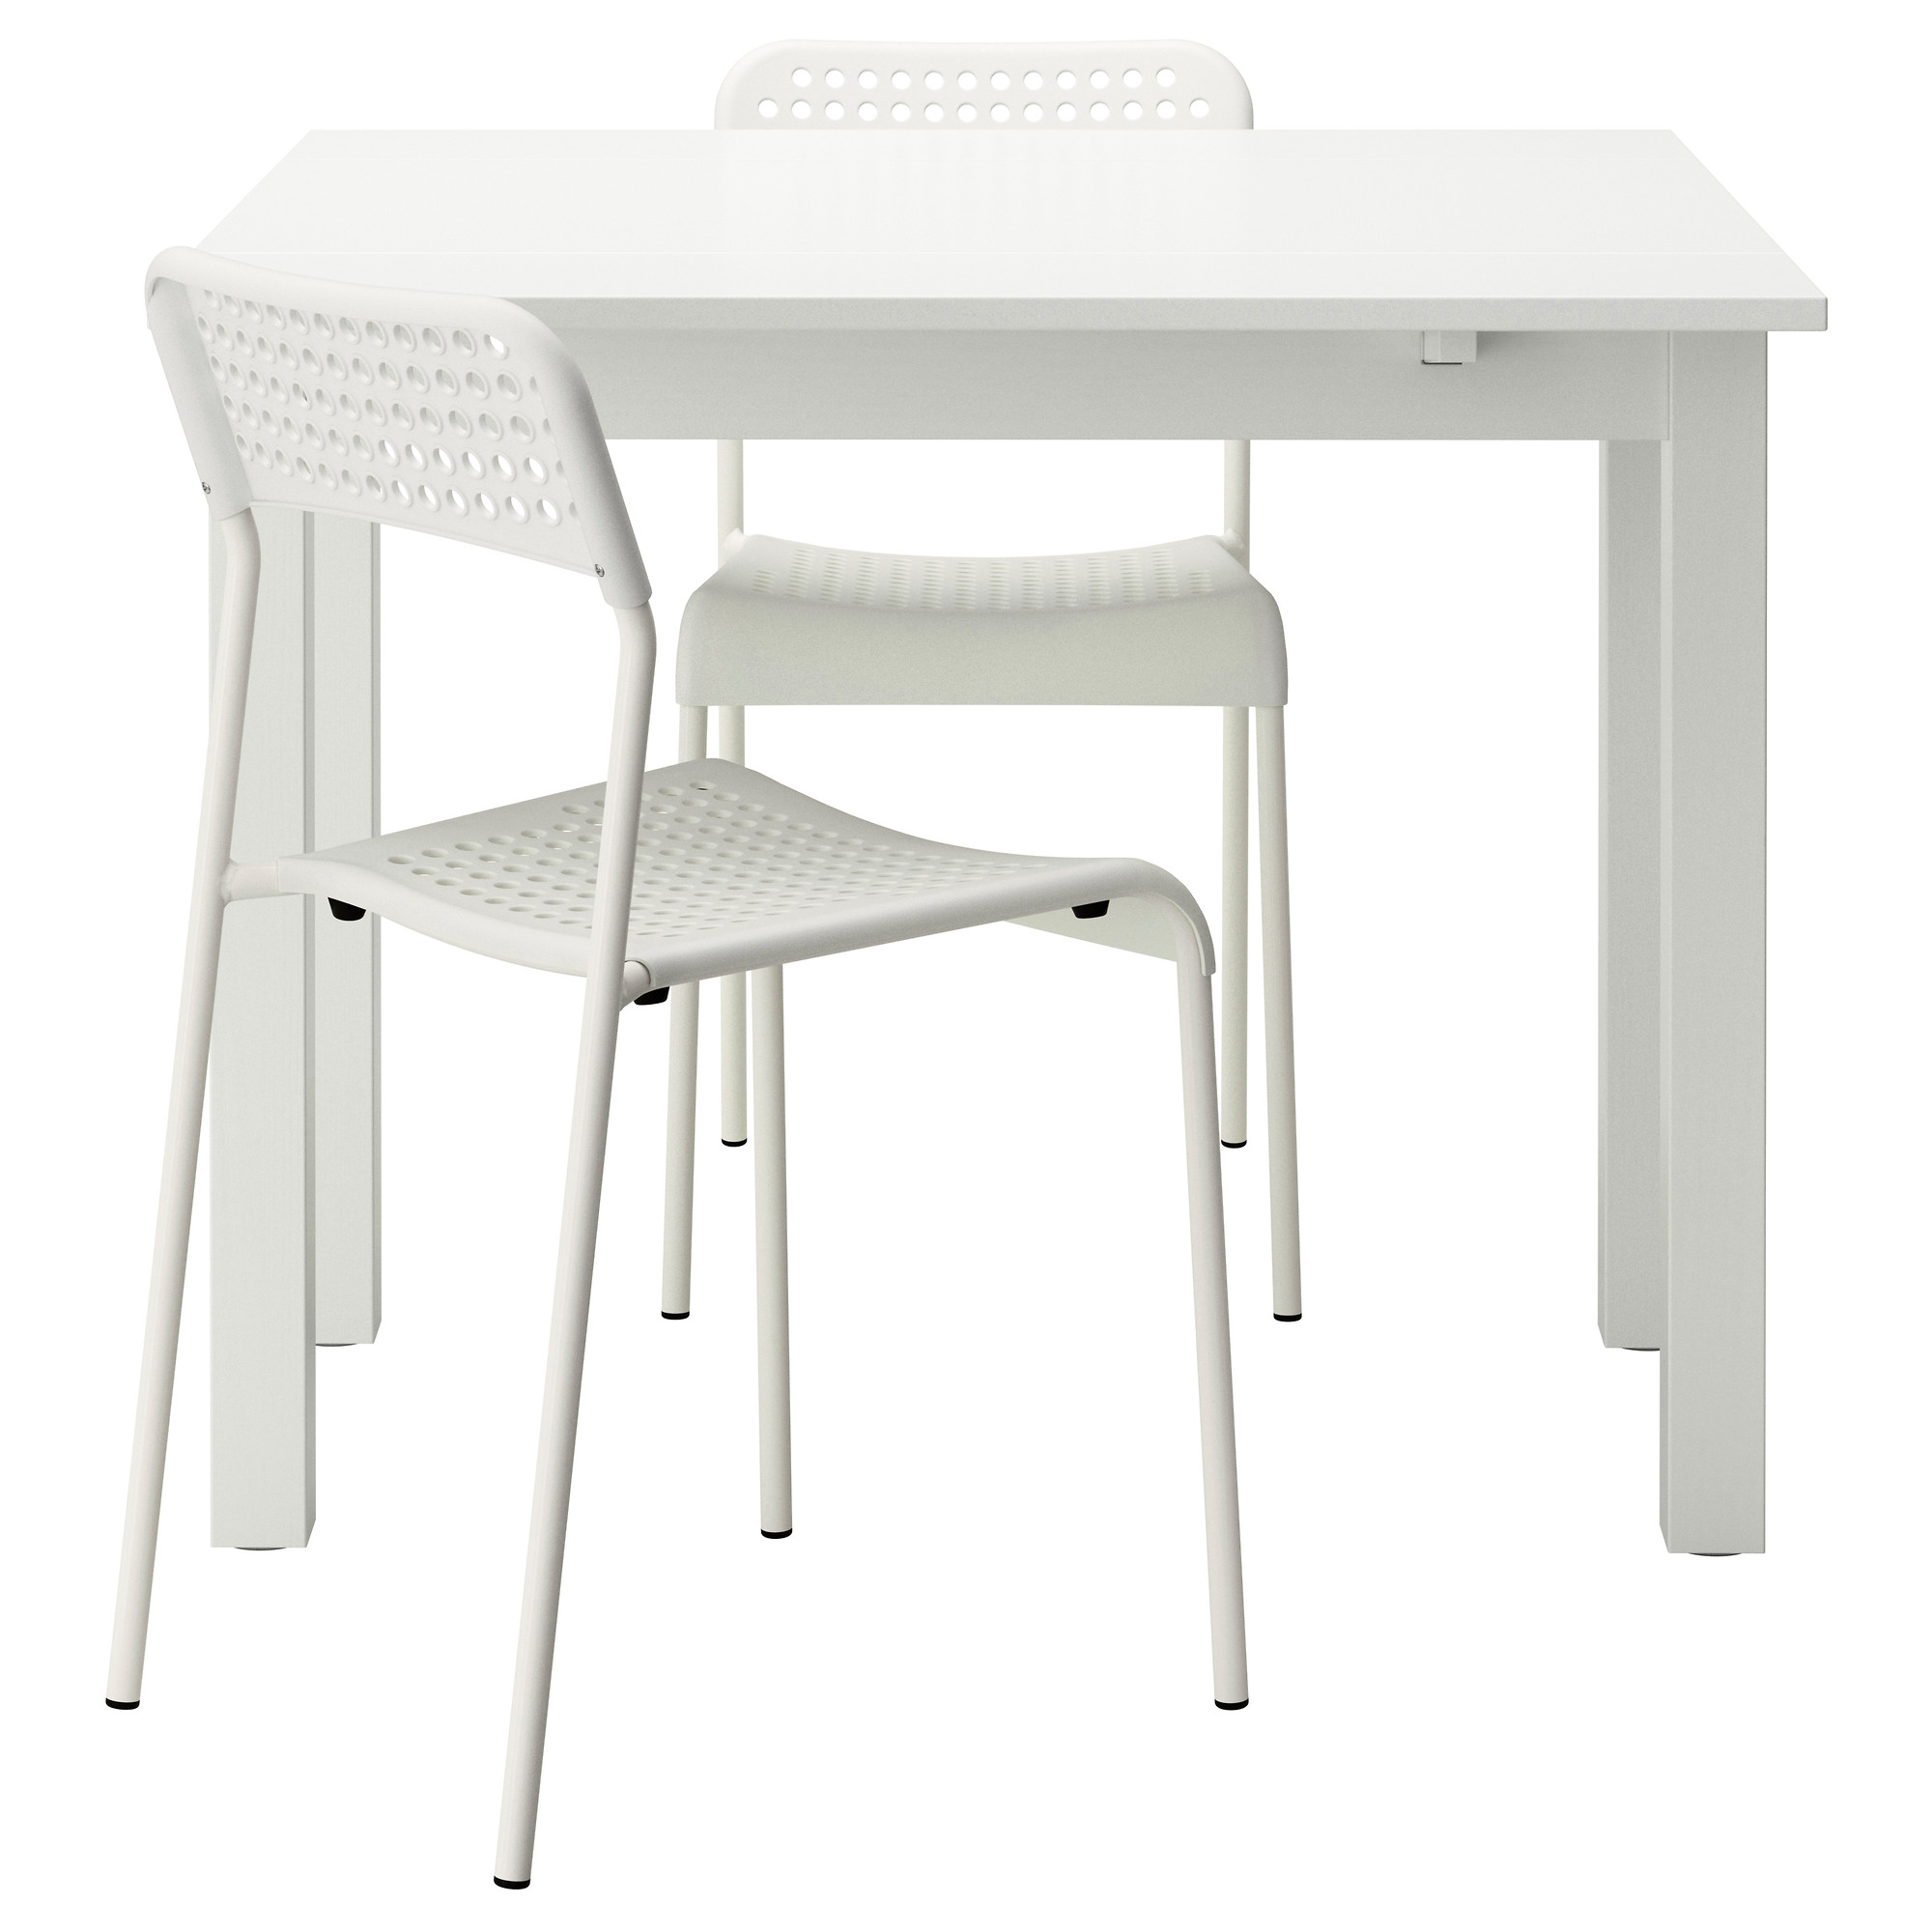 Table et chaise de cuisine ikea table chaise cuisine for Table de cuisine et chaise